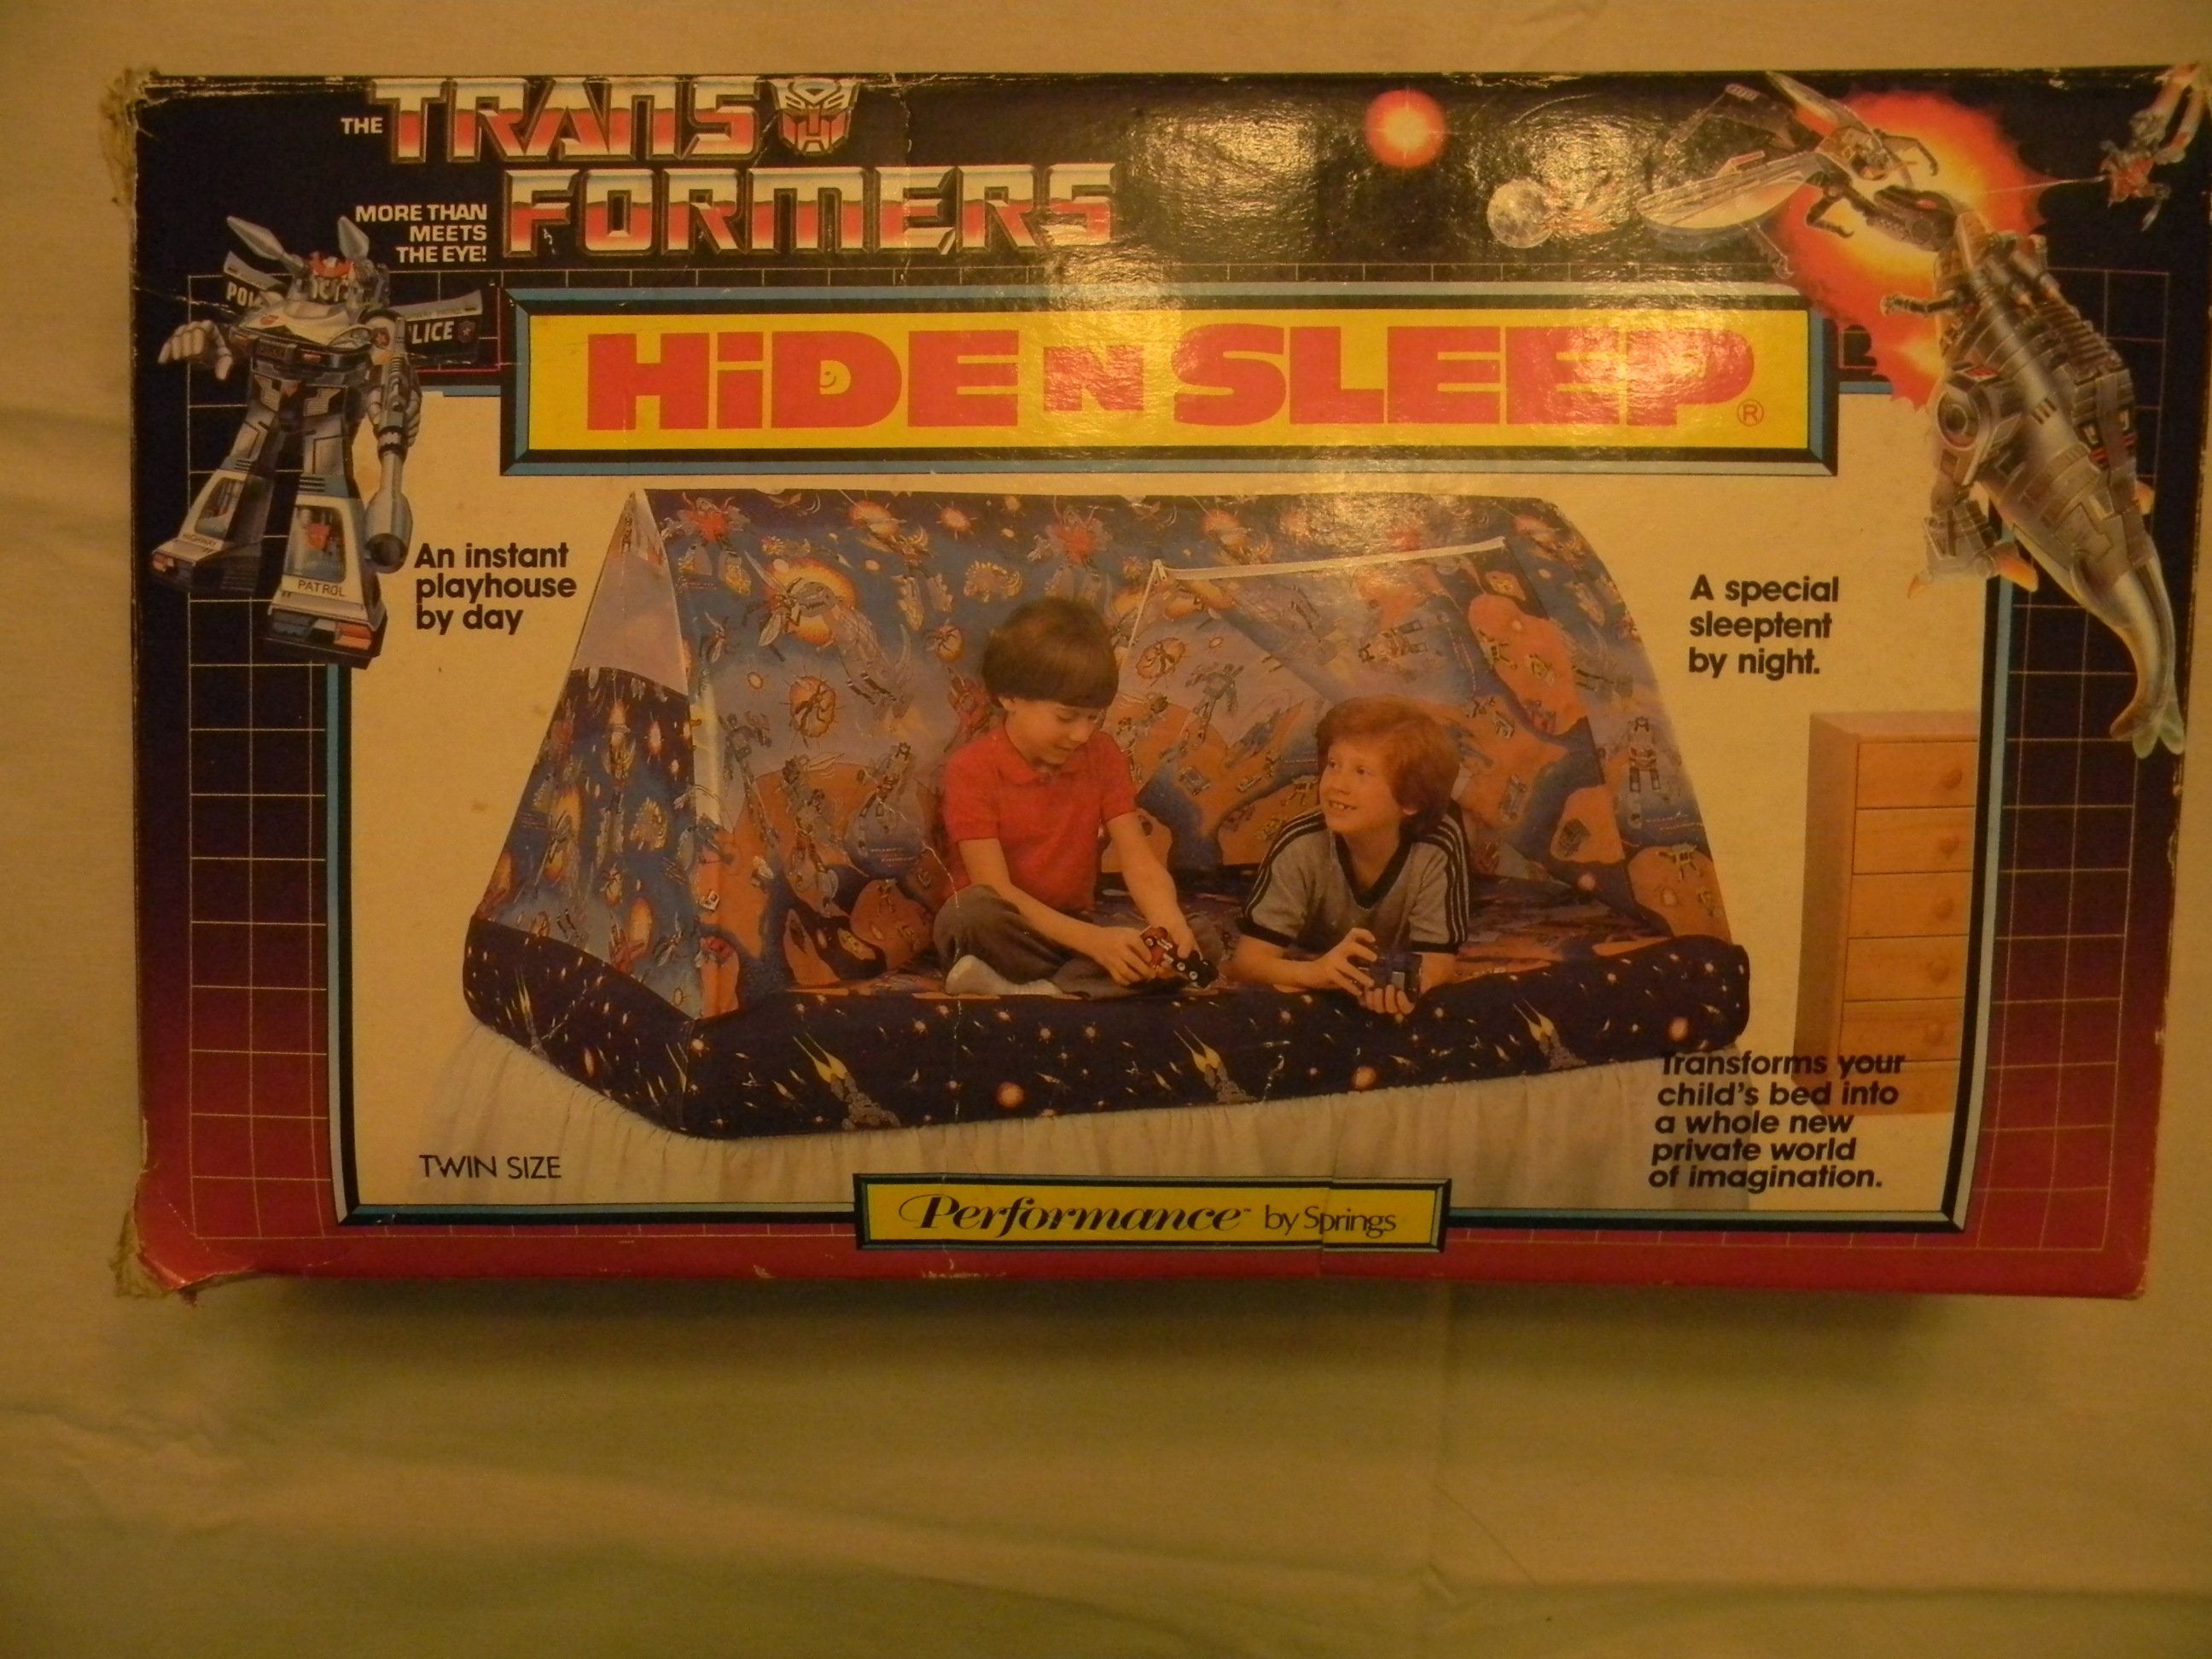 DSCN0456.JPG & Transformers g1 mib hide n sleep 1985 bed play tent | TFW2005 ...